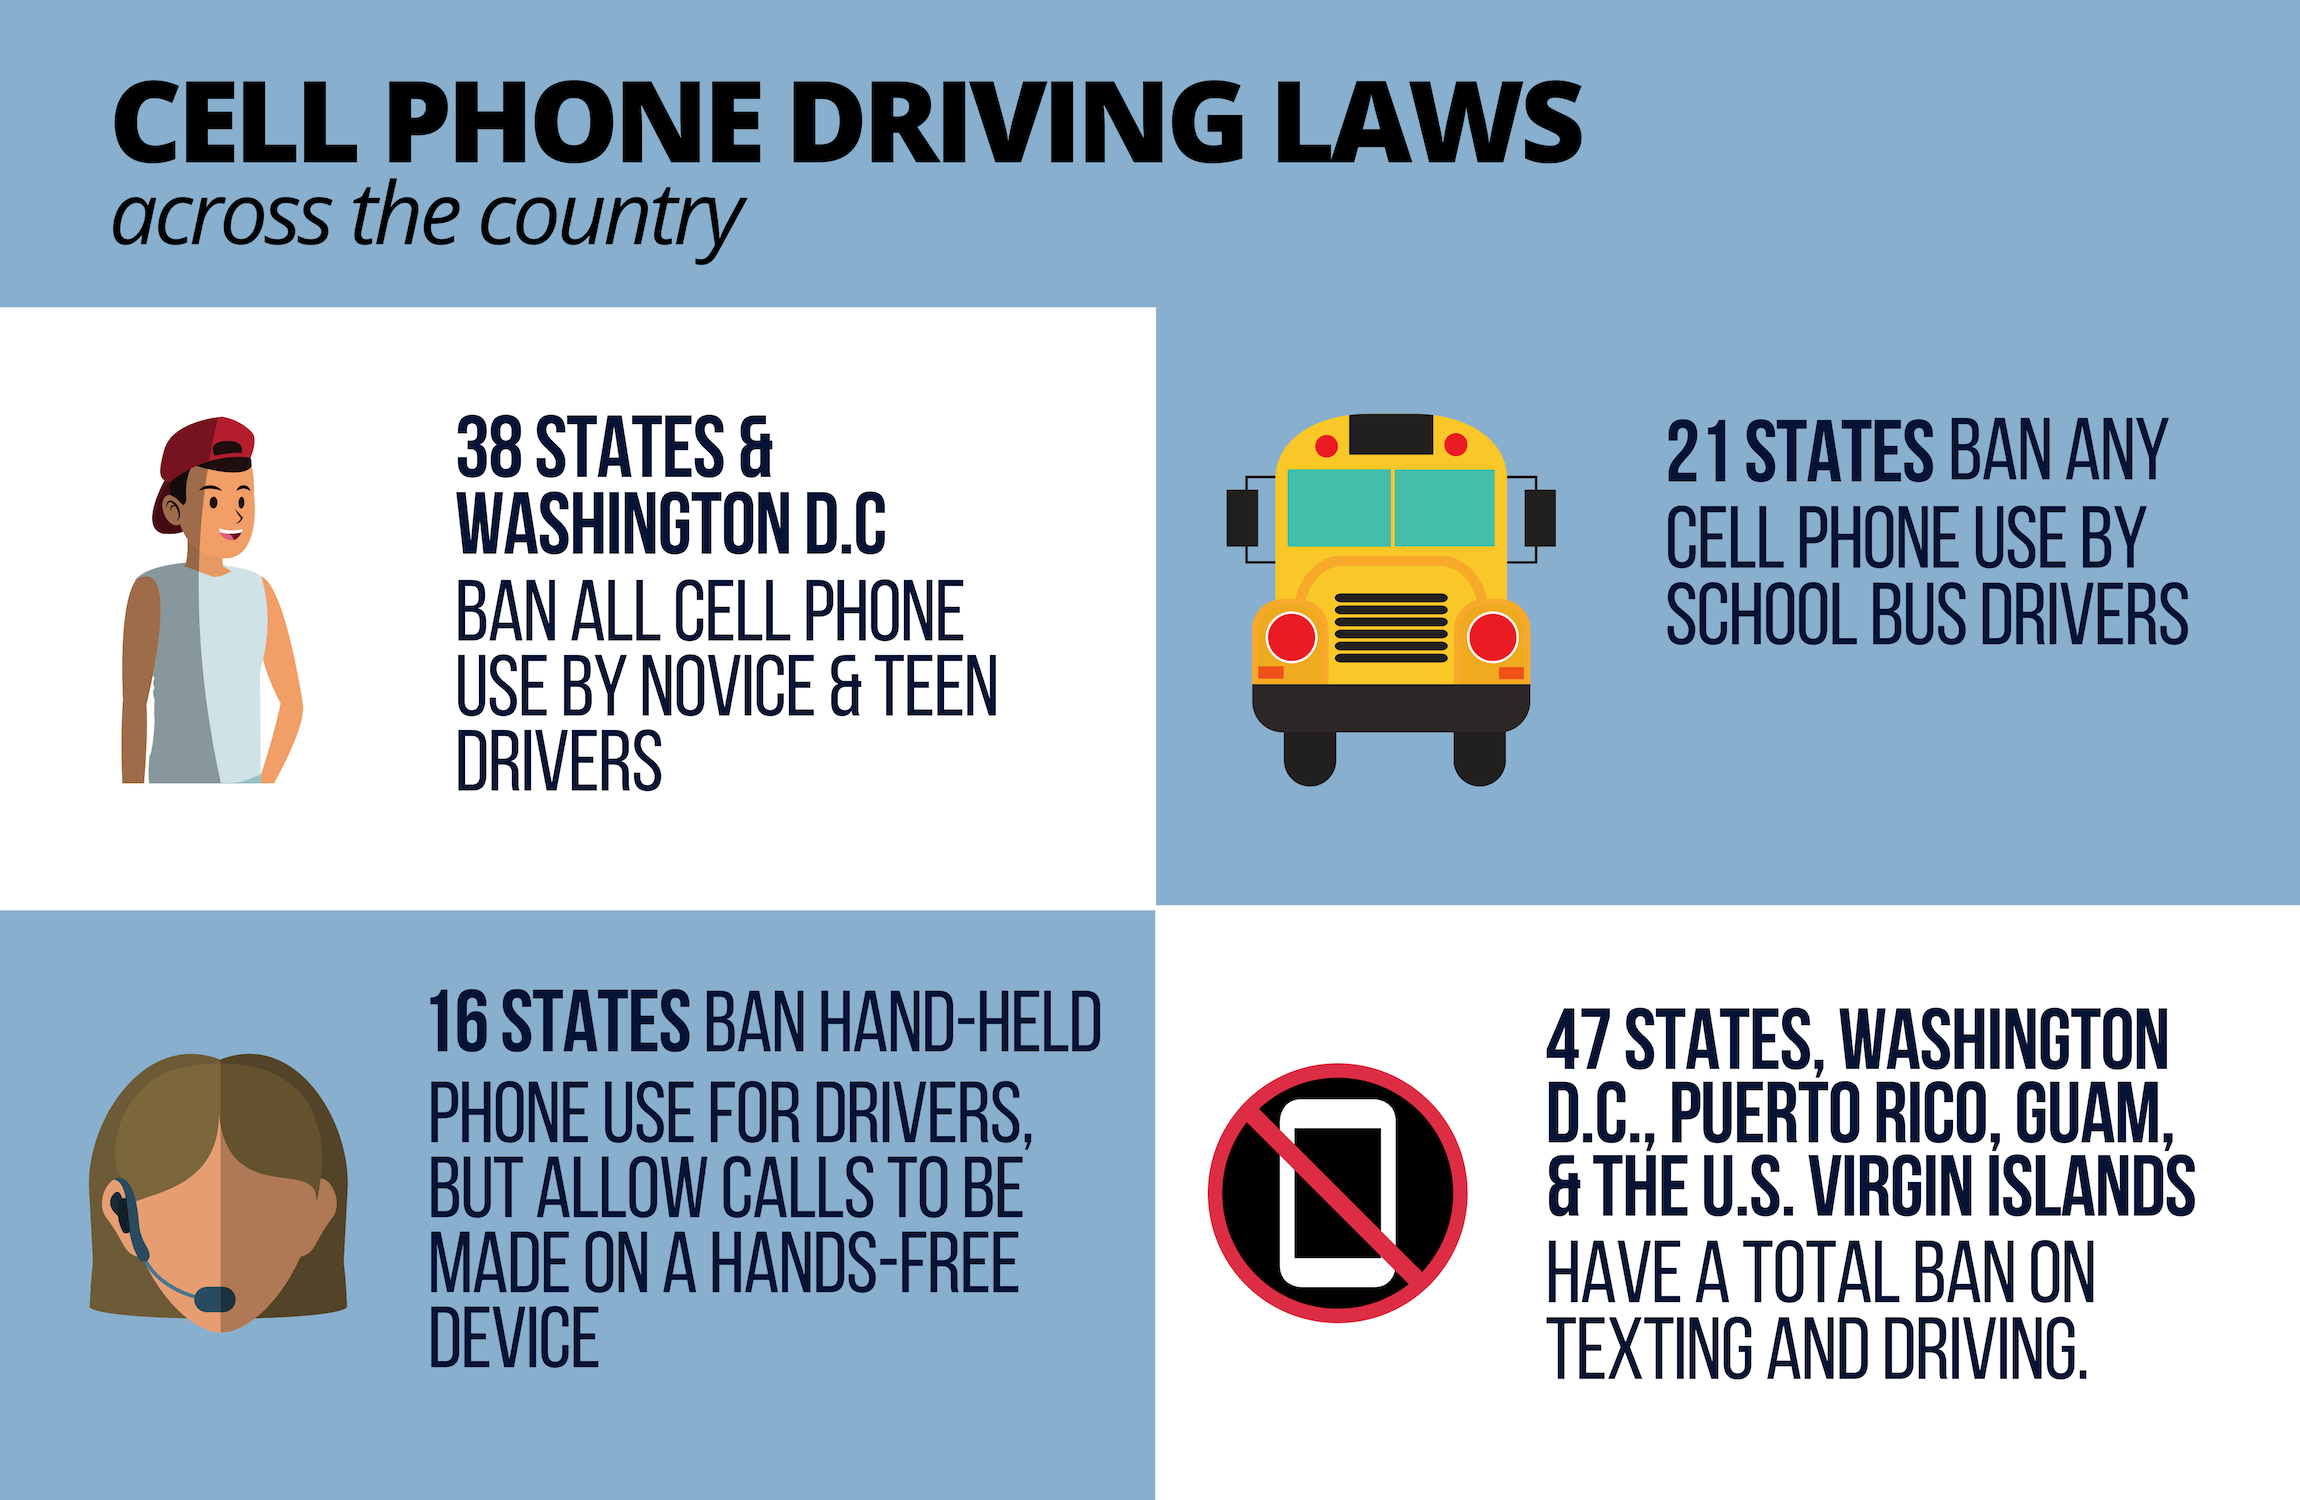 An overview of texting and driving laws across the United States.